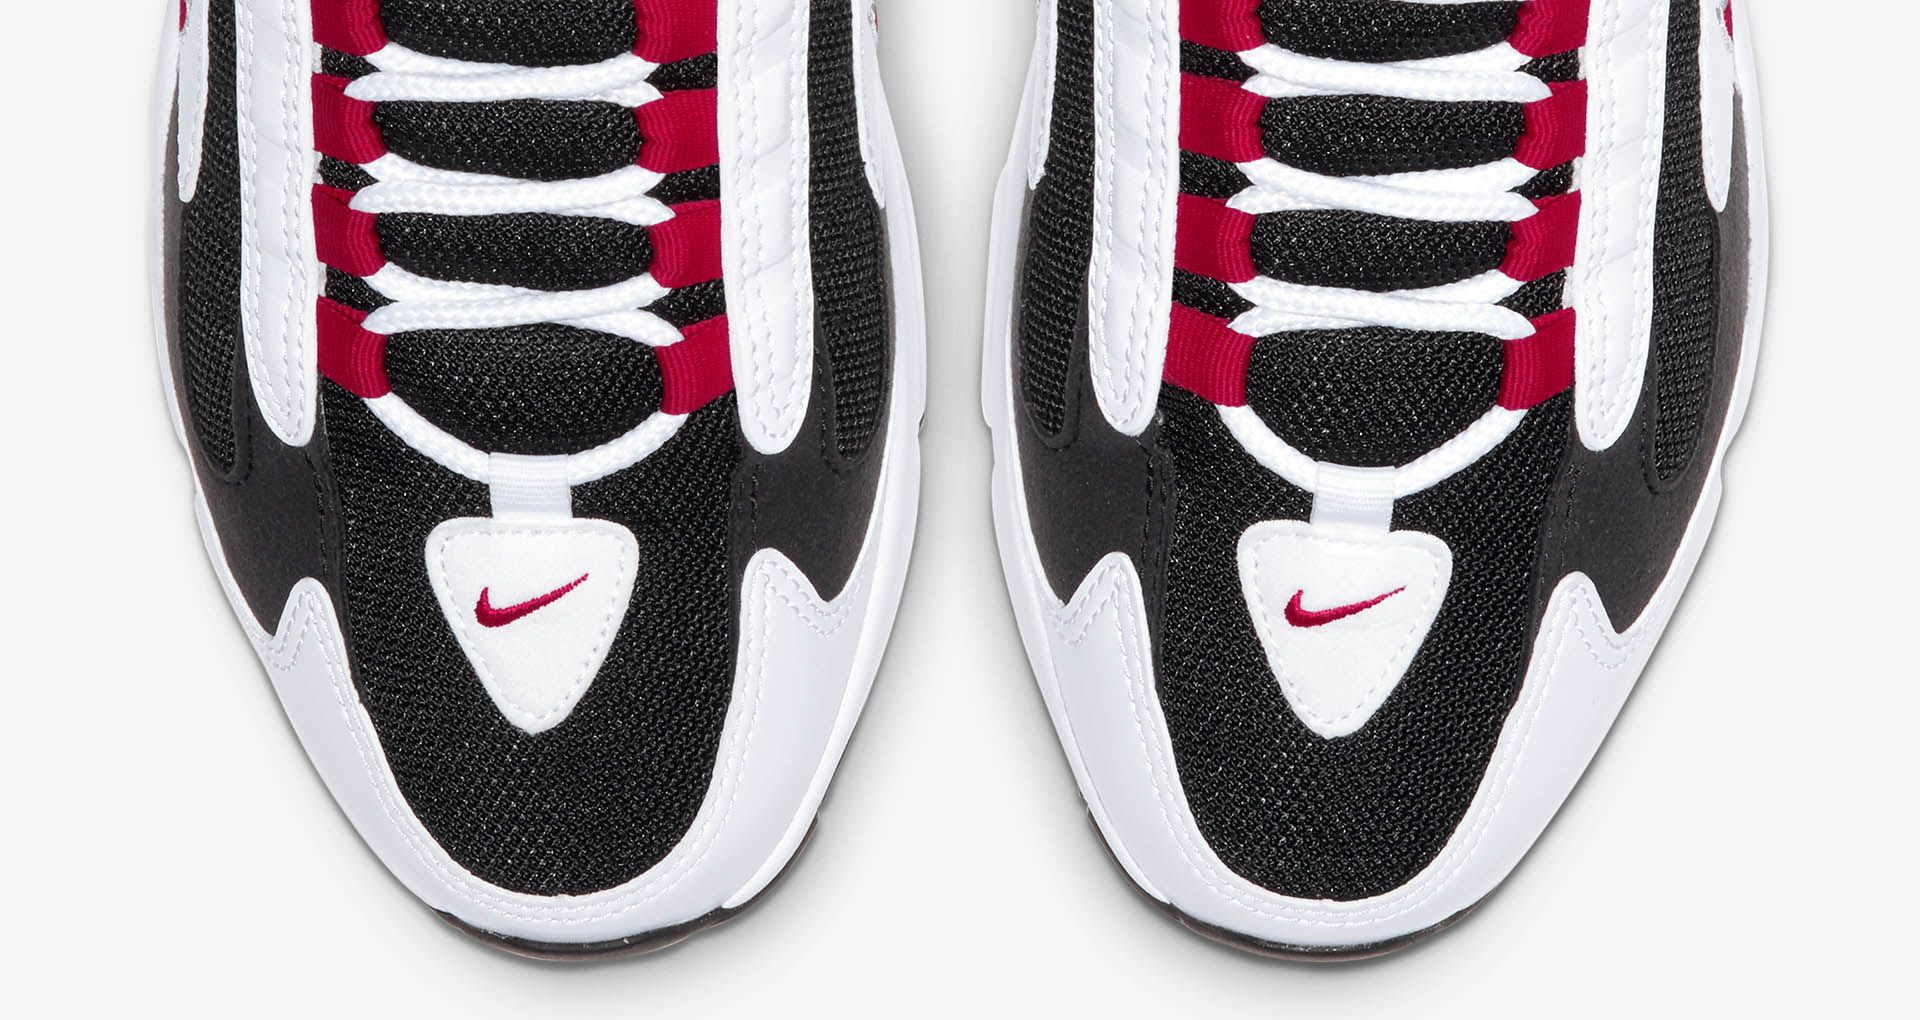 Air Max Triax 96 'University Red' Release Date. Nike SNKRS